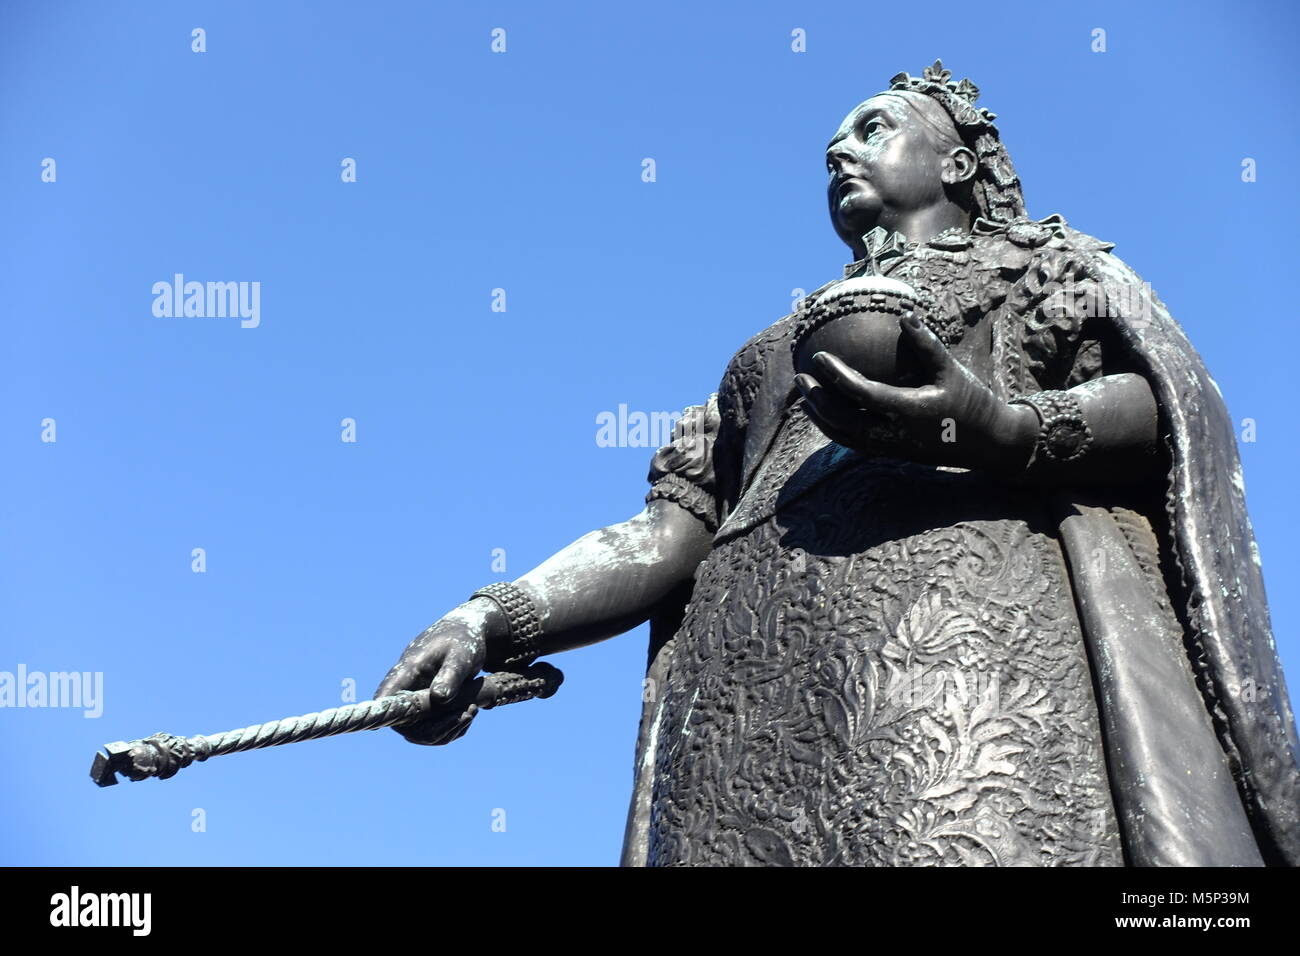 a-close-up-view-of-the-bronze-statue-of-queen-victoria-which-stands-M5P39M.jpg